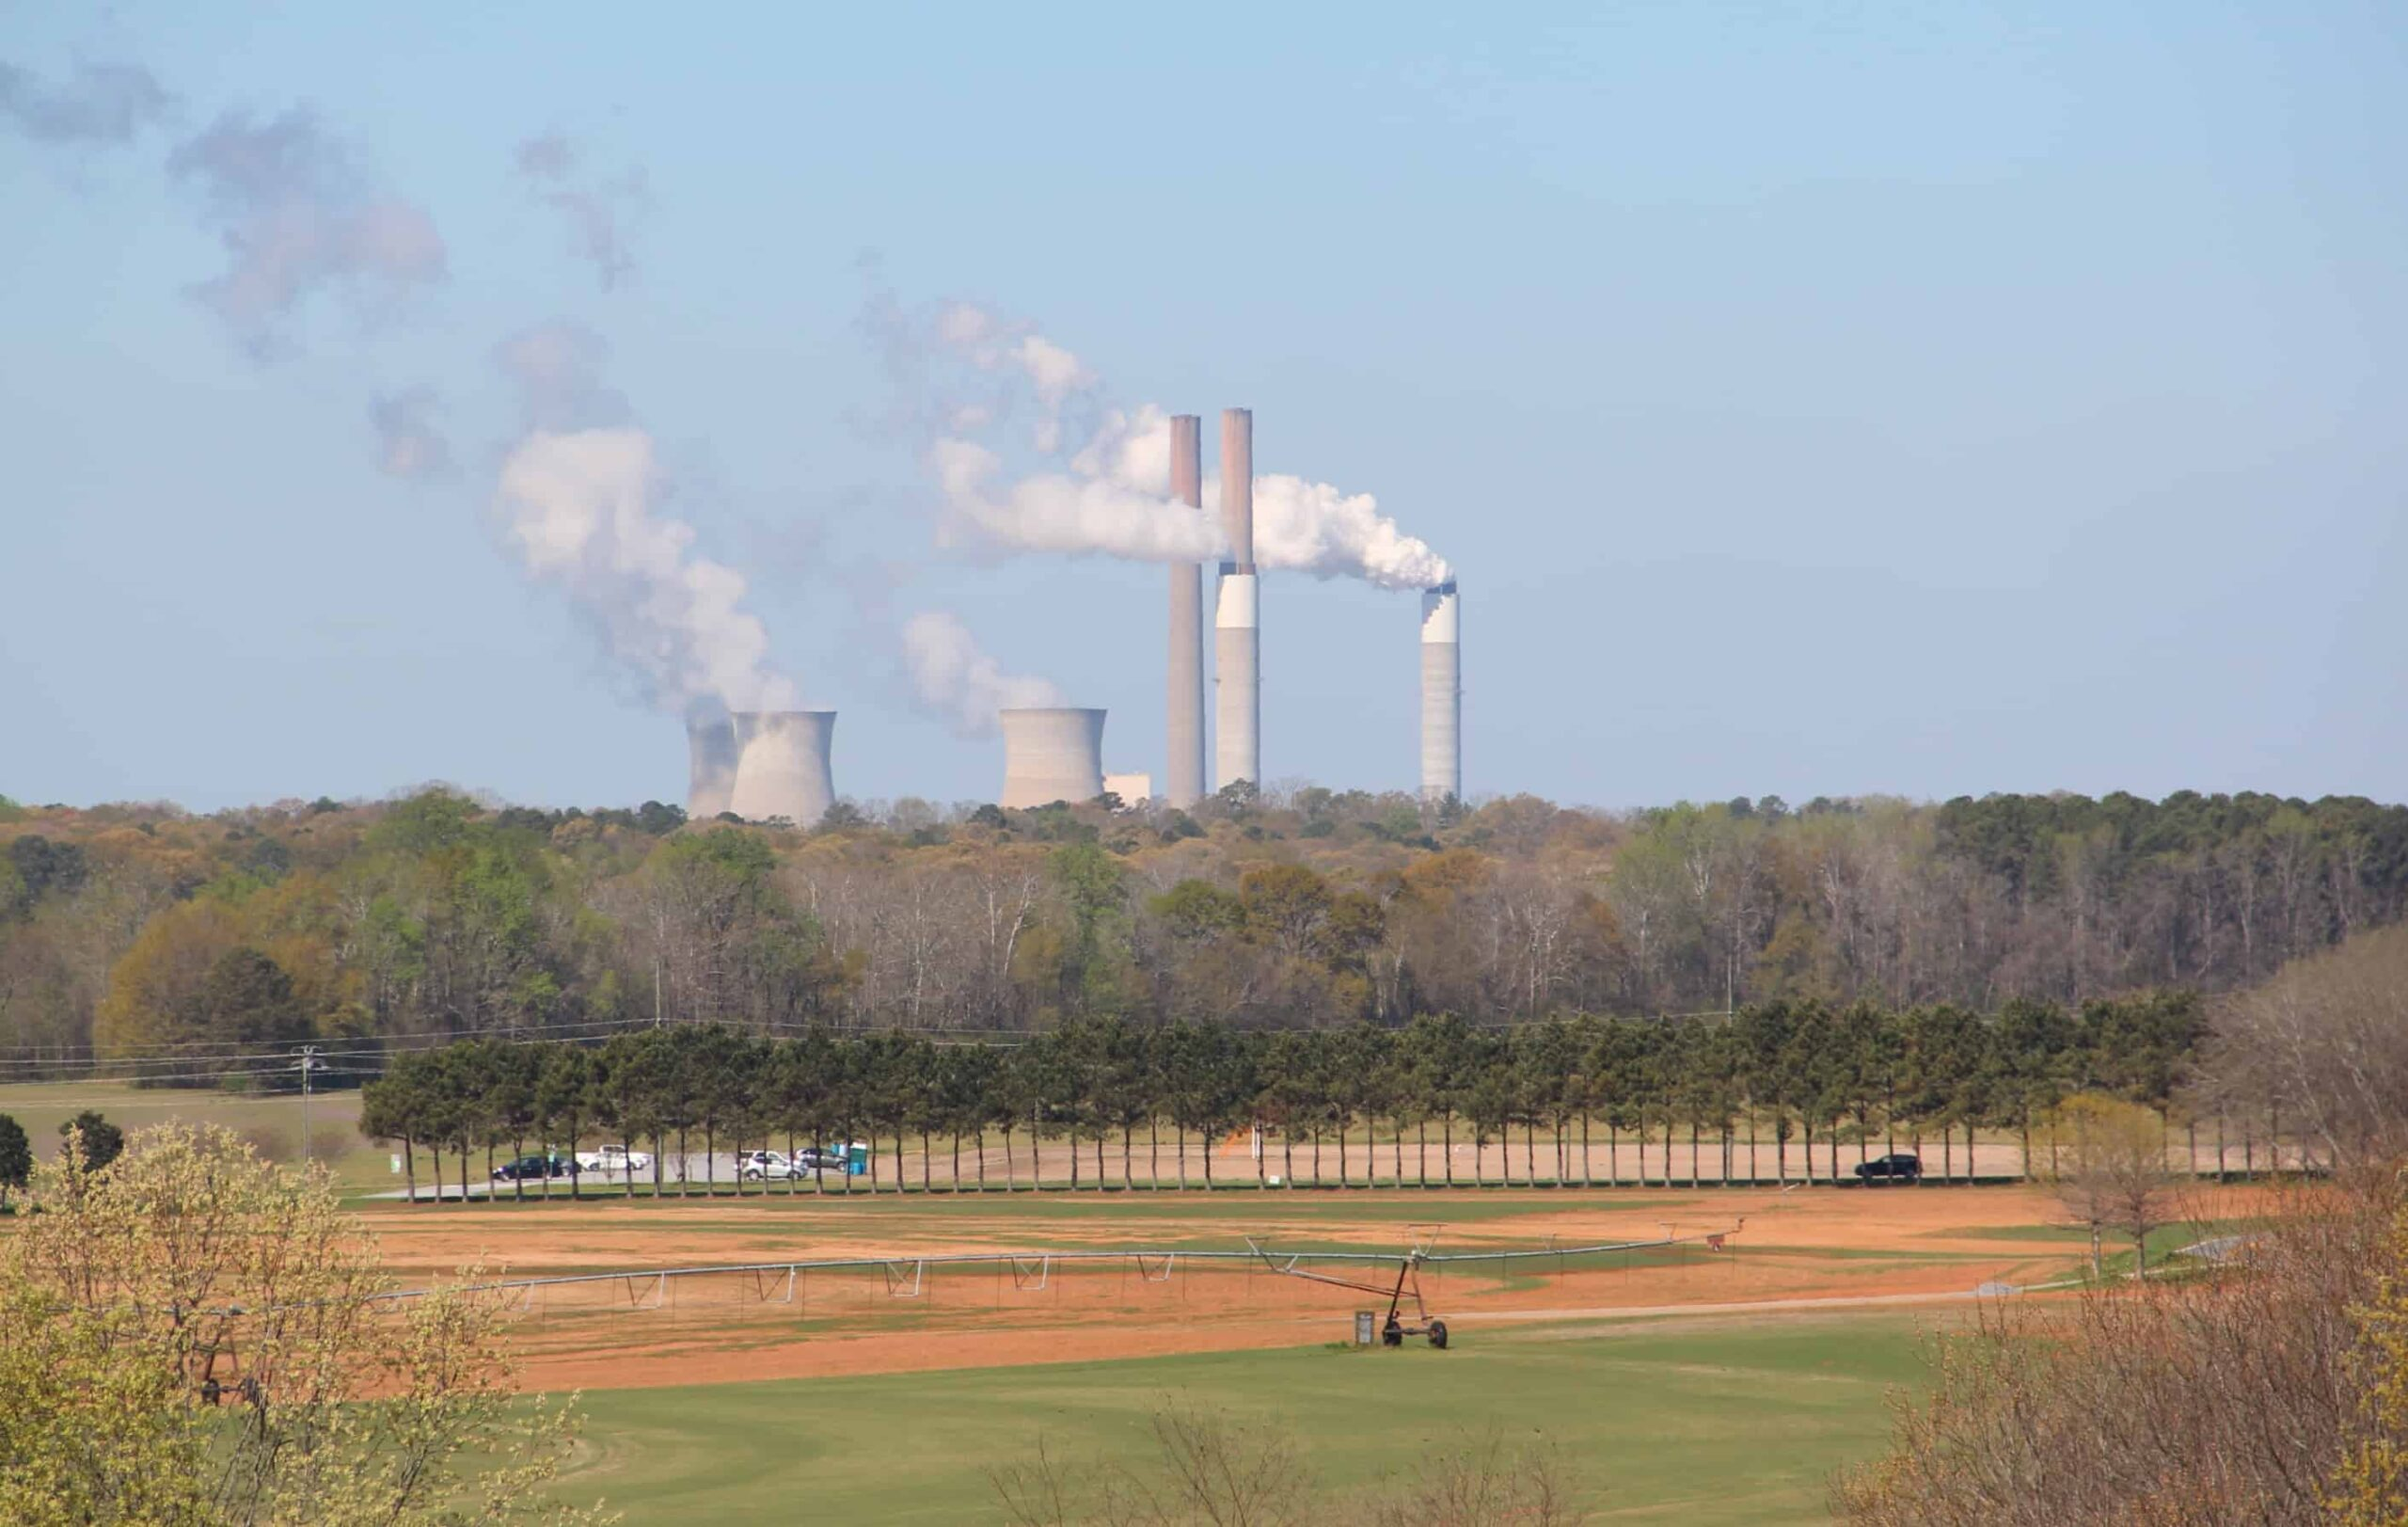 Georgia Power's 2019 IRP: Limit Renewables, Lock In Fossil Fuels